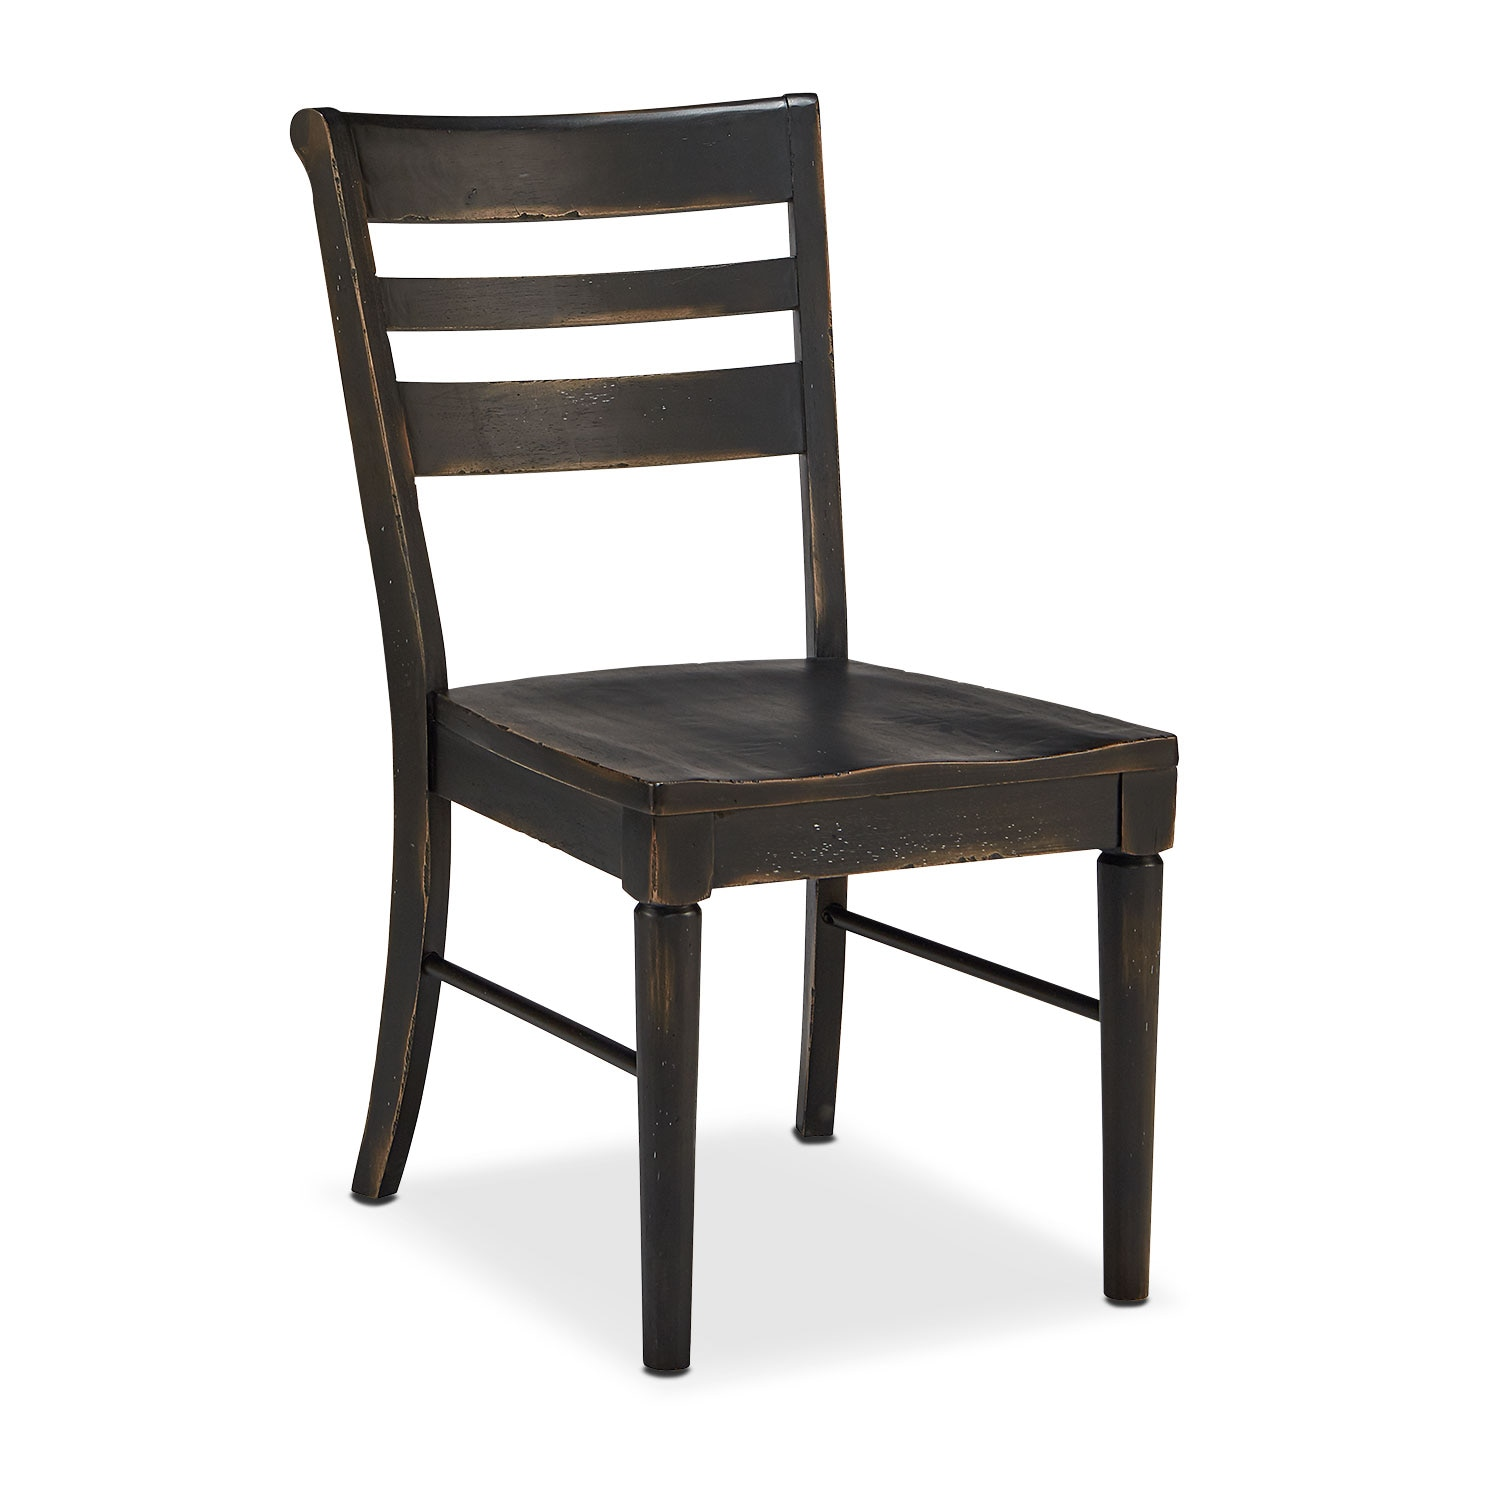 Kempton Slat Back Chair - Chimney